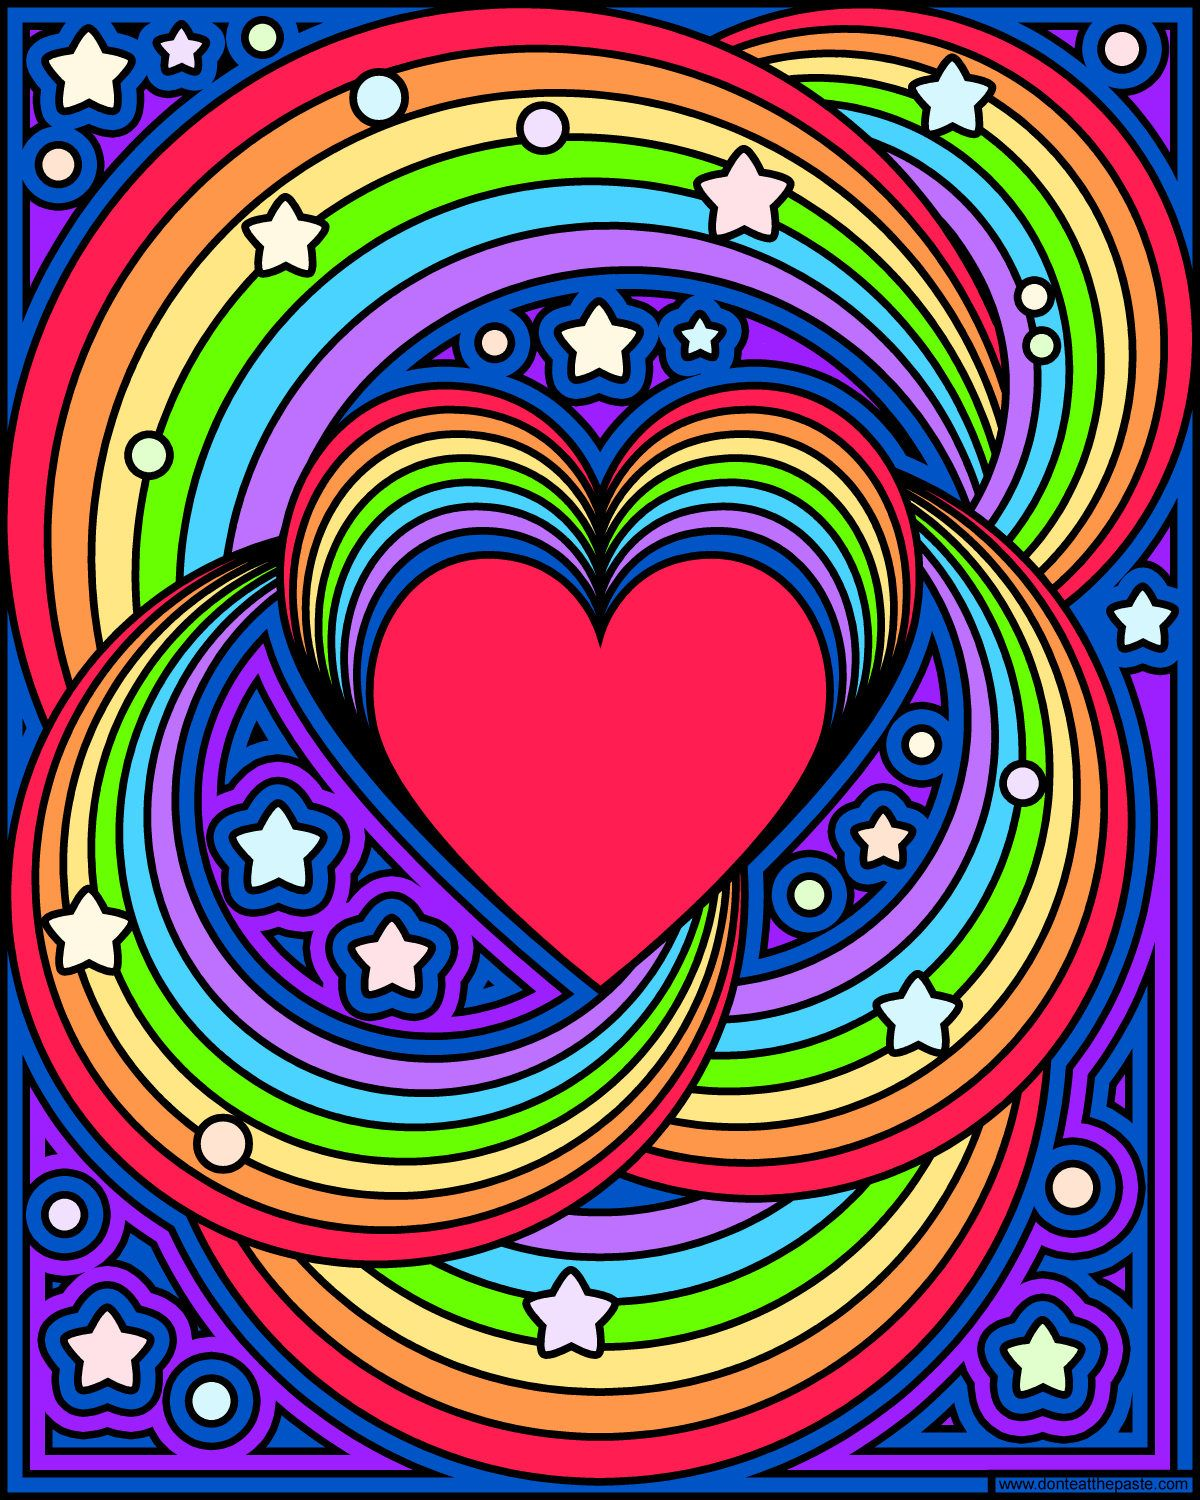 Rainbow Love Coloring Page Love Coloring Pages Heart Coloring Pages Rainbow Art